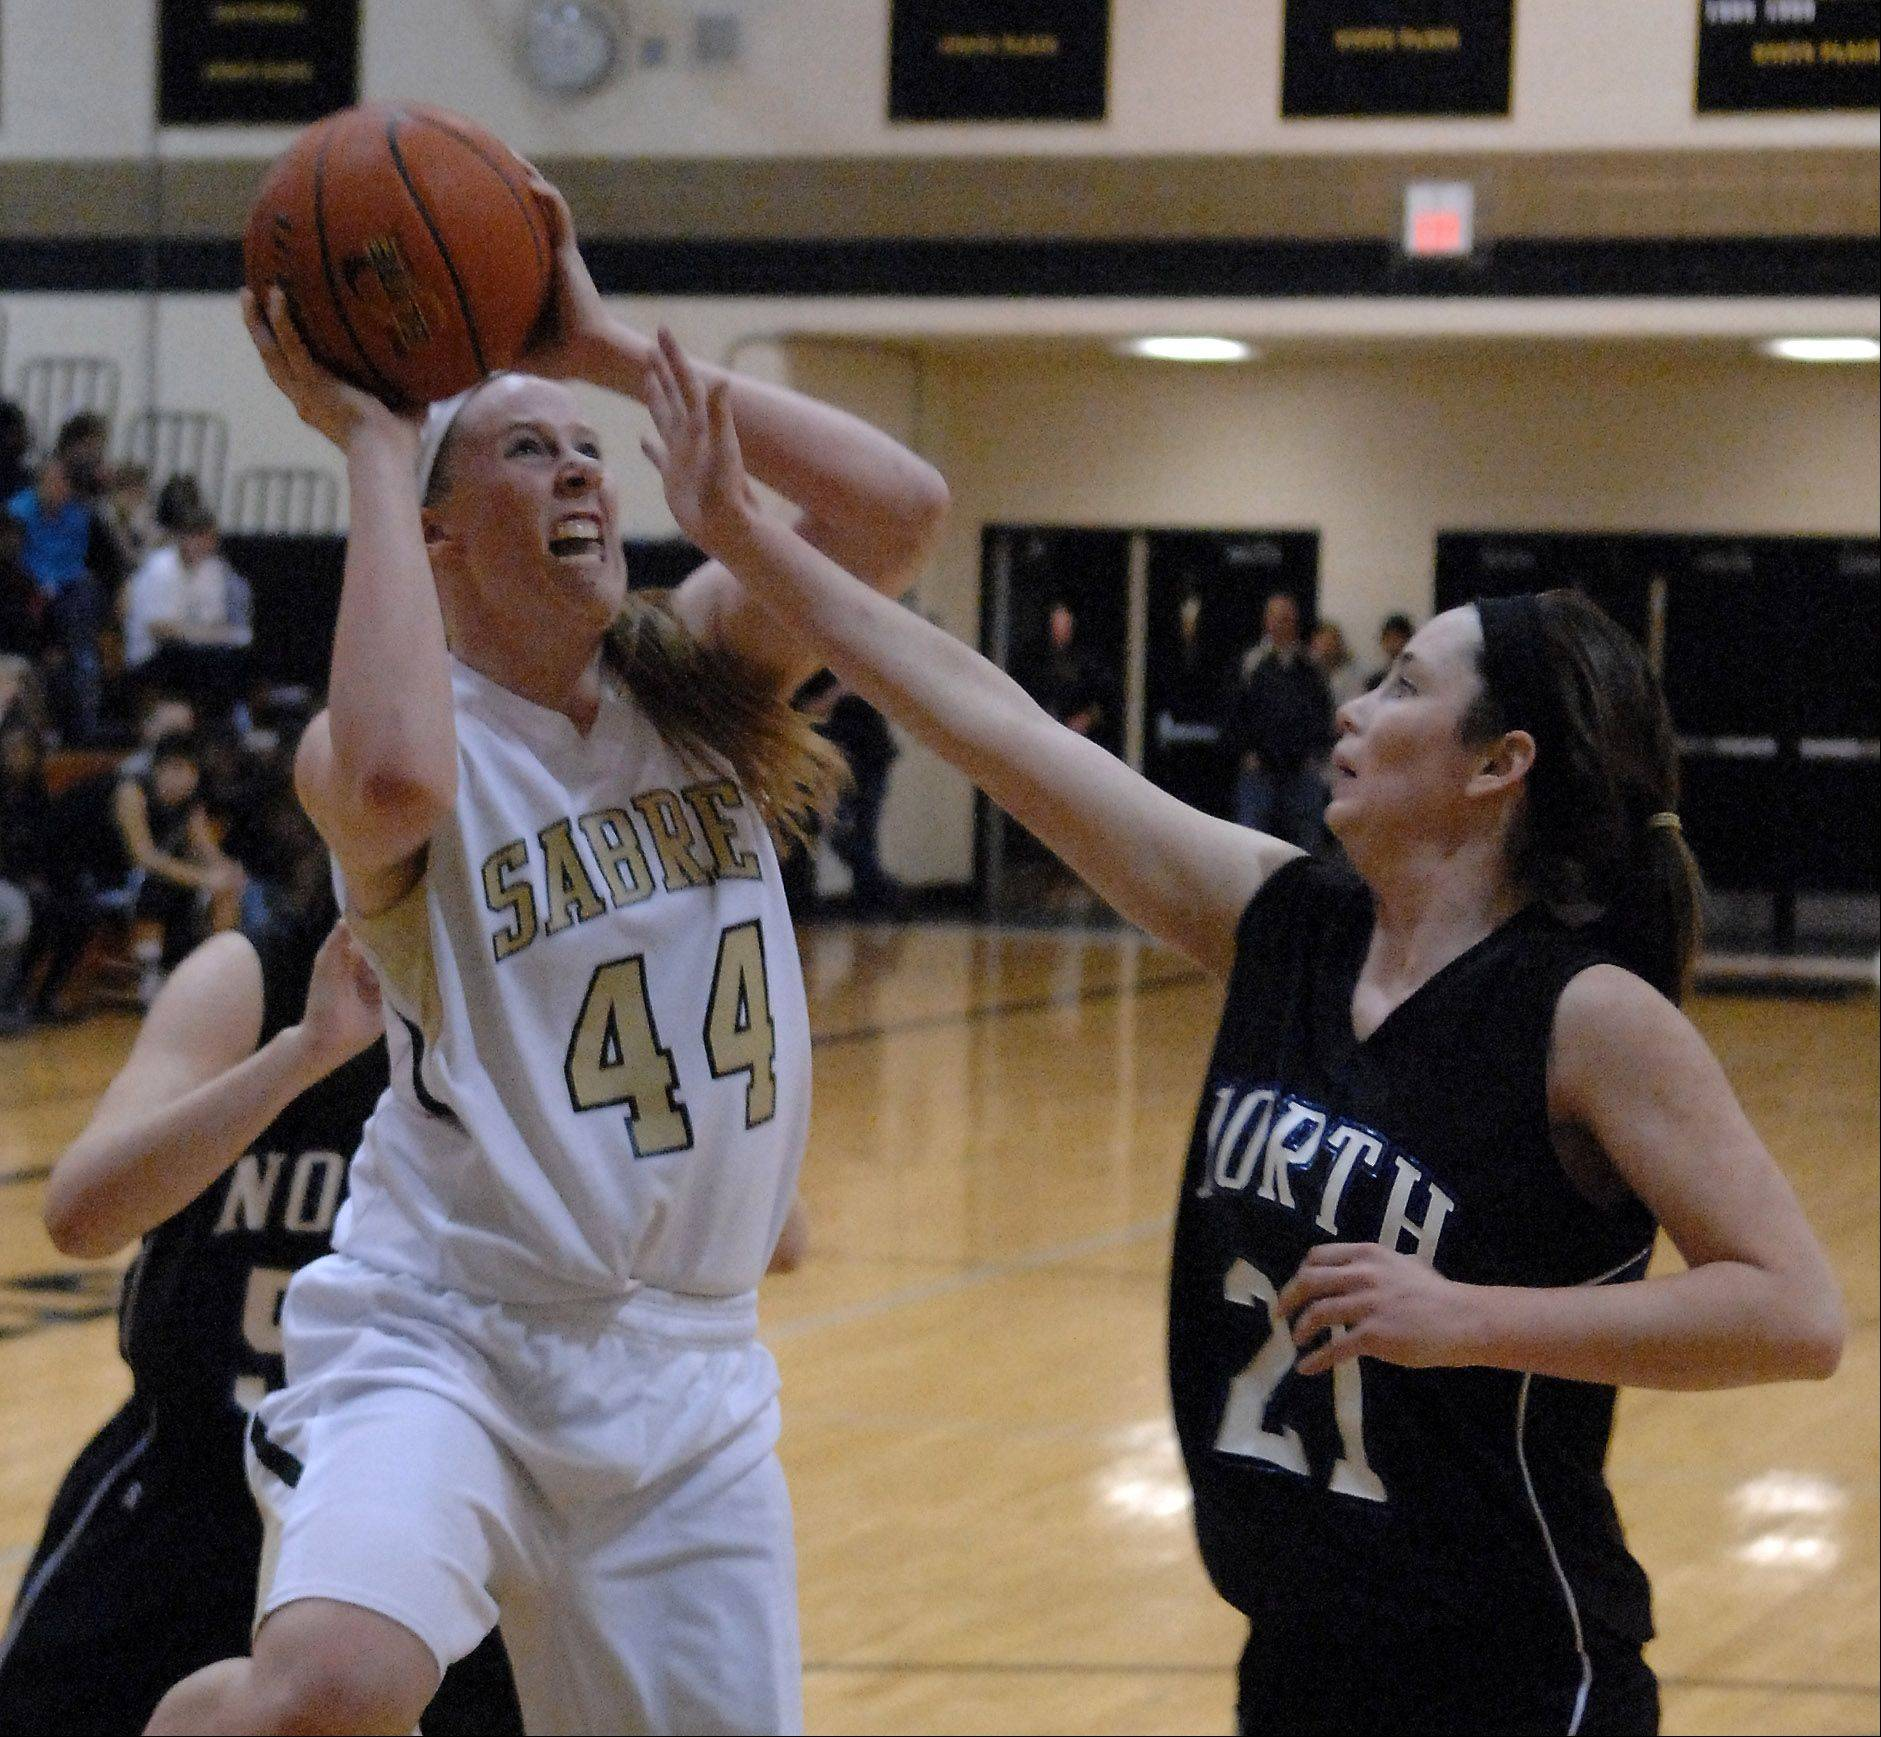 Images: St. Charles North vs. Streamwood girls basketball